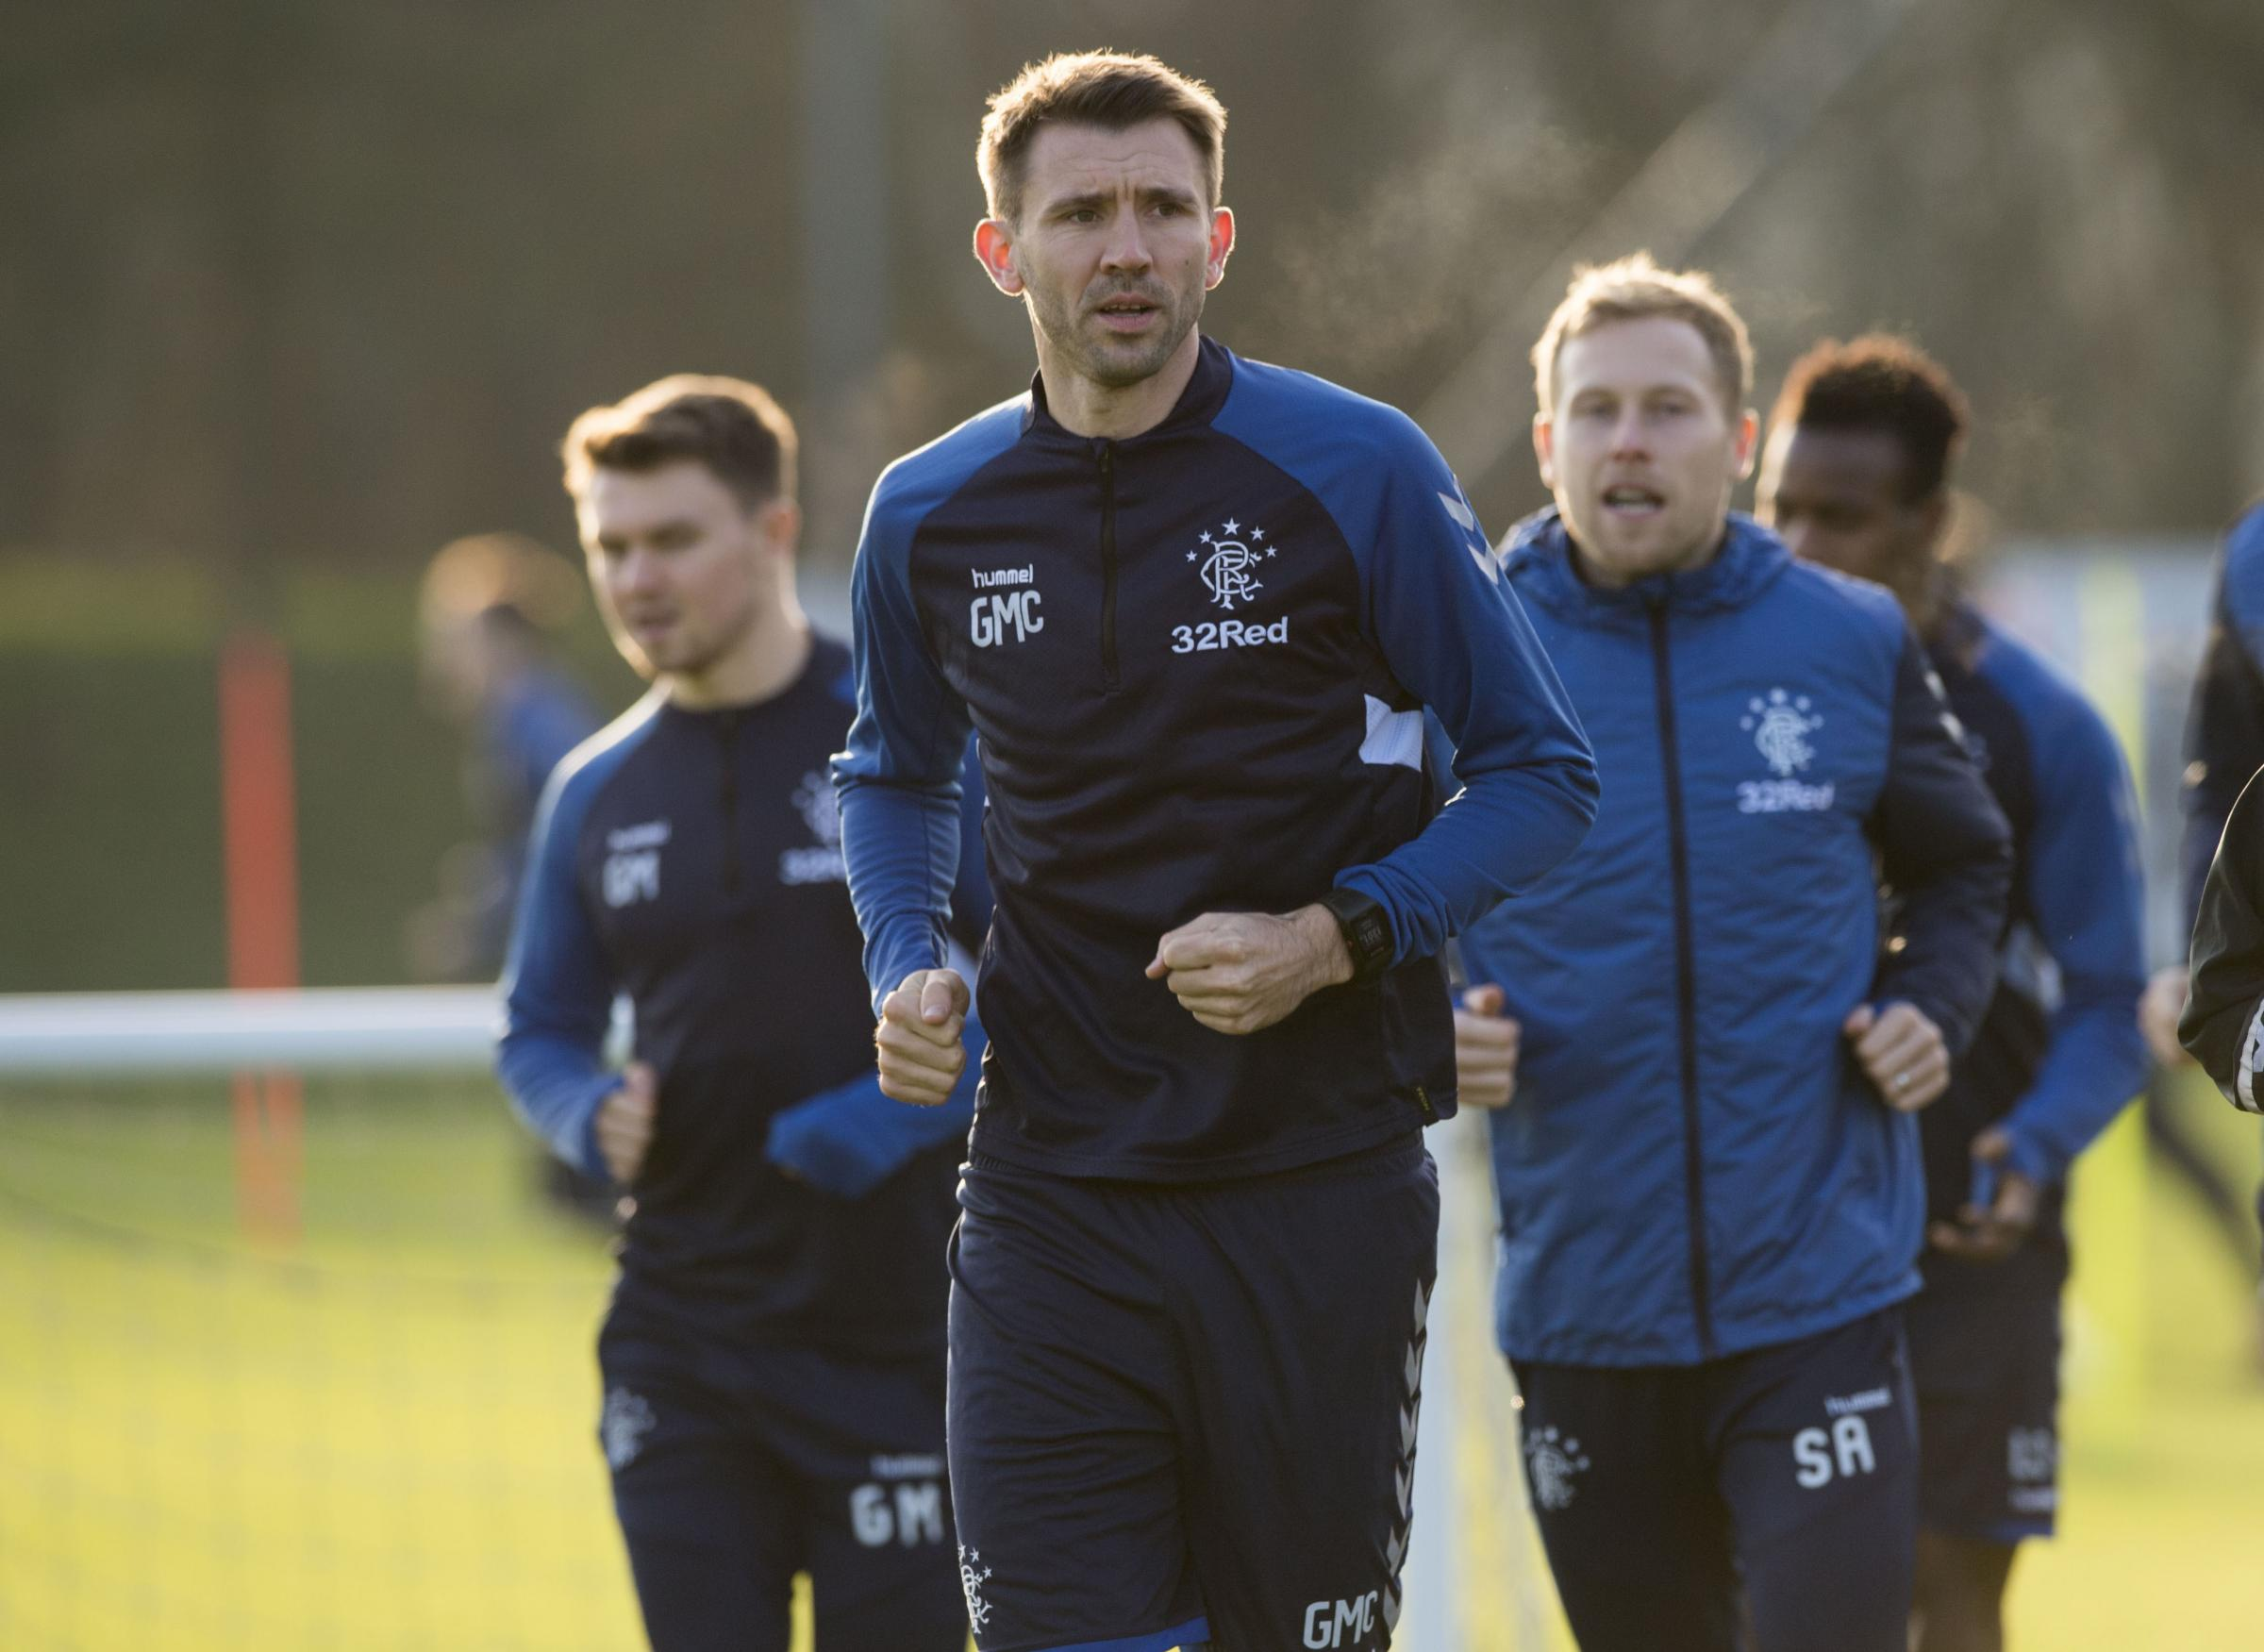 Rangers' Gareth McAuley (centre) leads the way in training